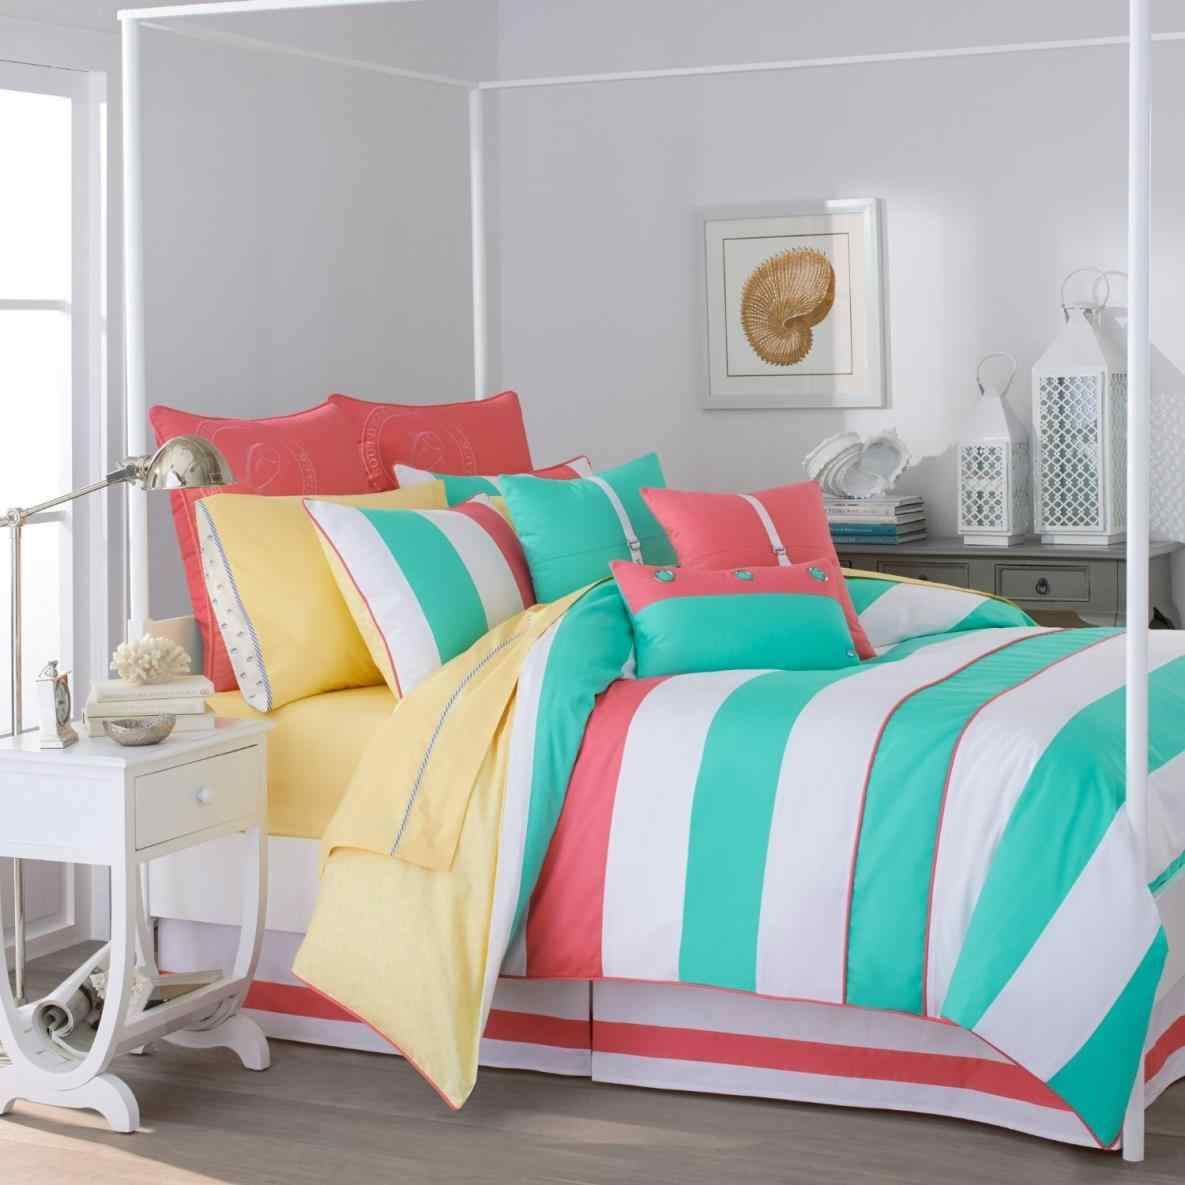 not at can enliven in sets bedroom bedding j pretty let williams instant color a by is why on beds sherry so your for to any it comforter such these bring girls comforters cute that an interiors twin teenage us space take pin turquoise look